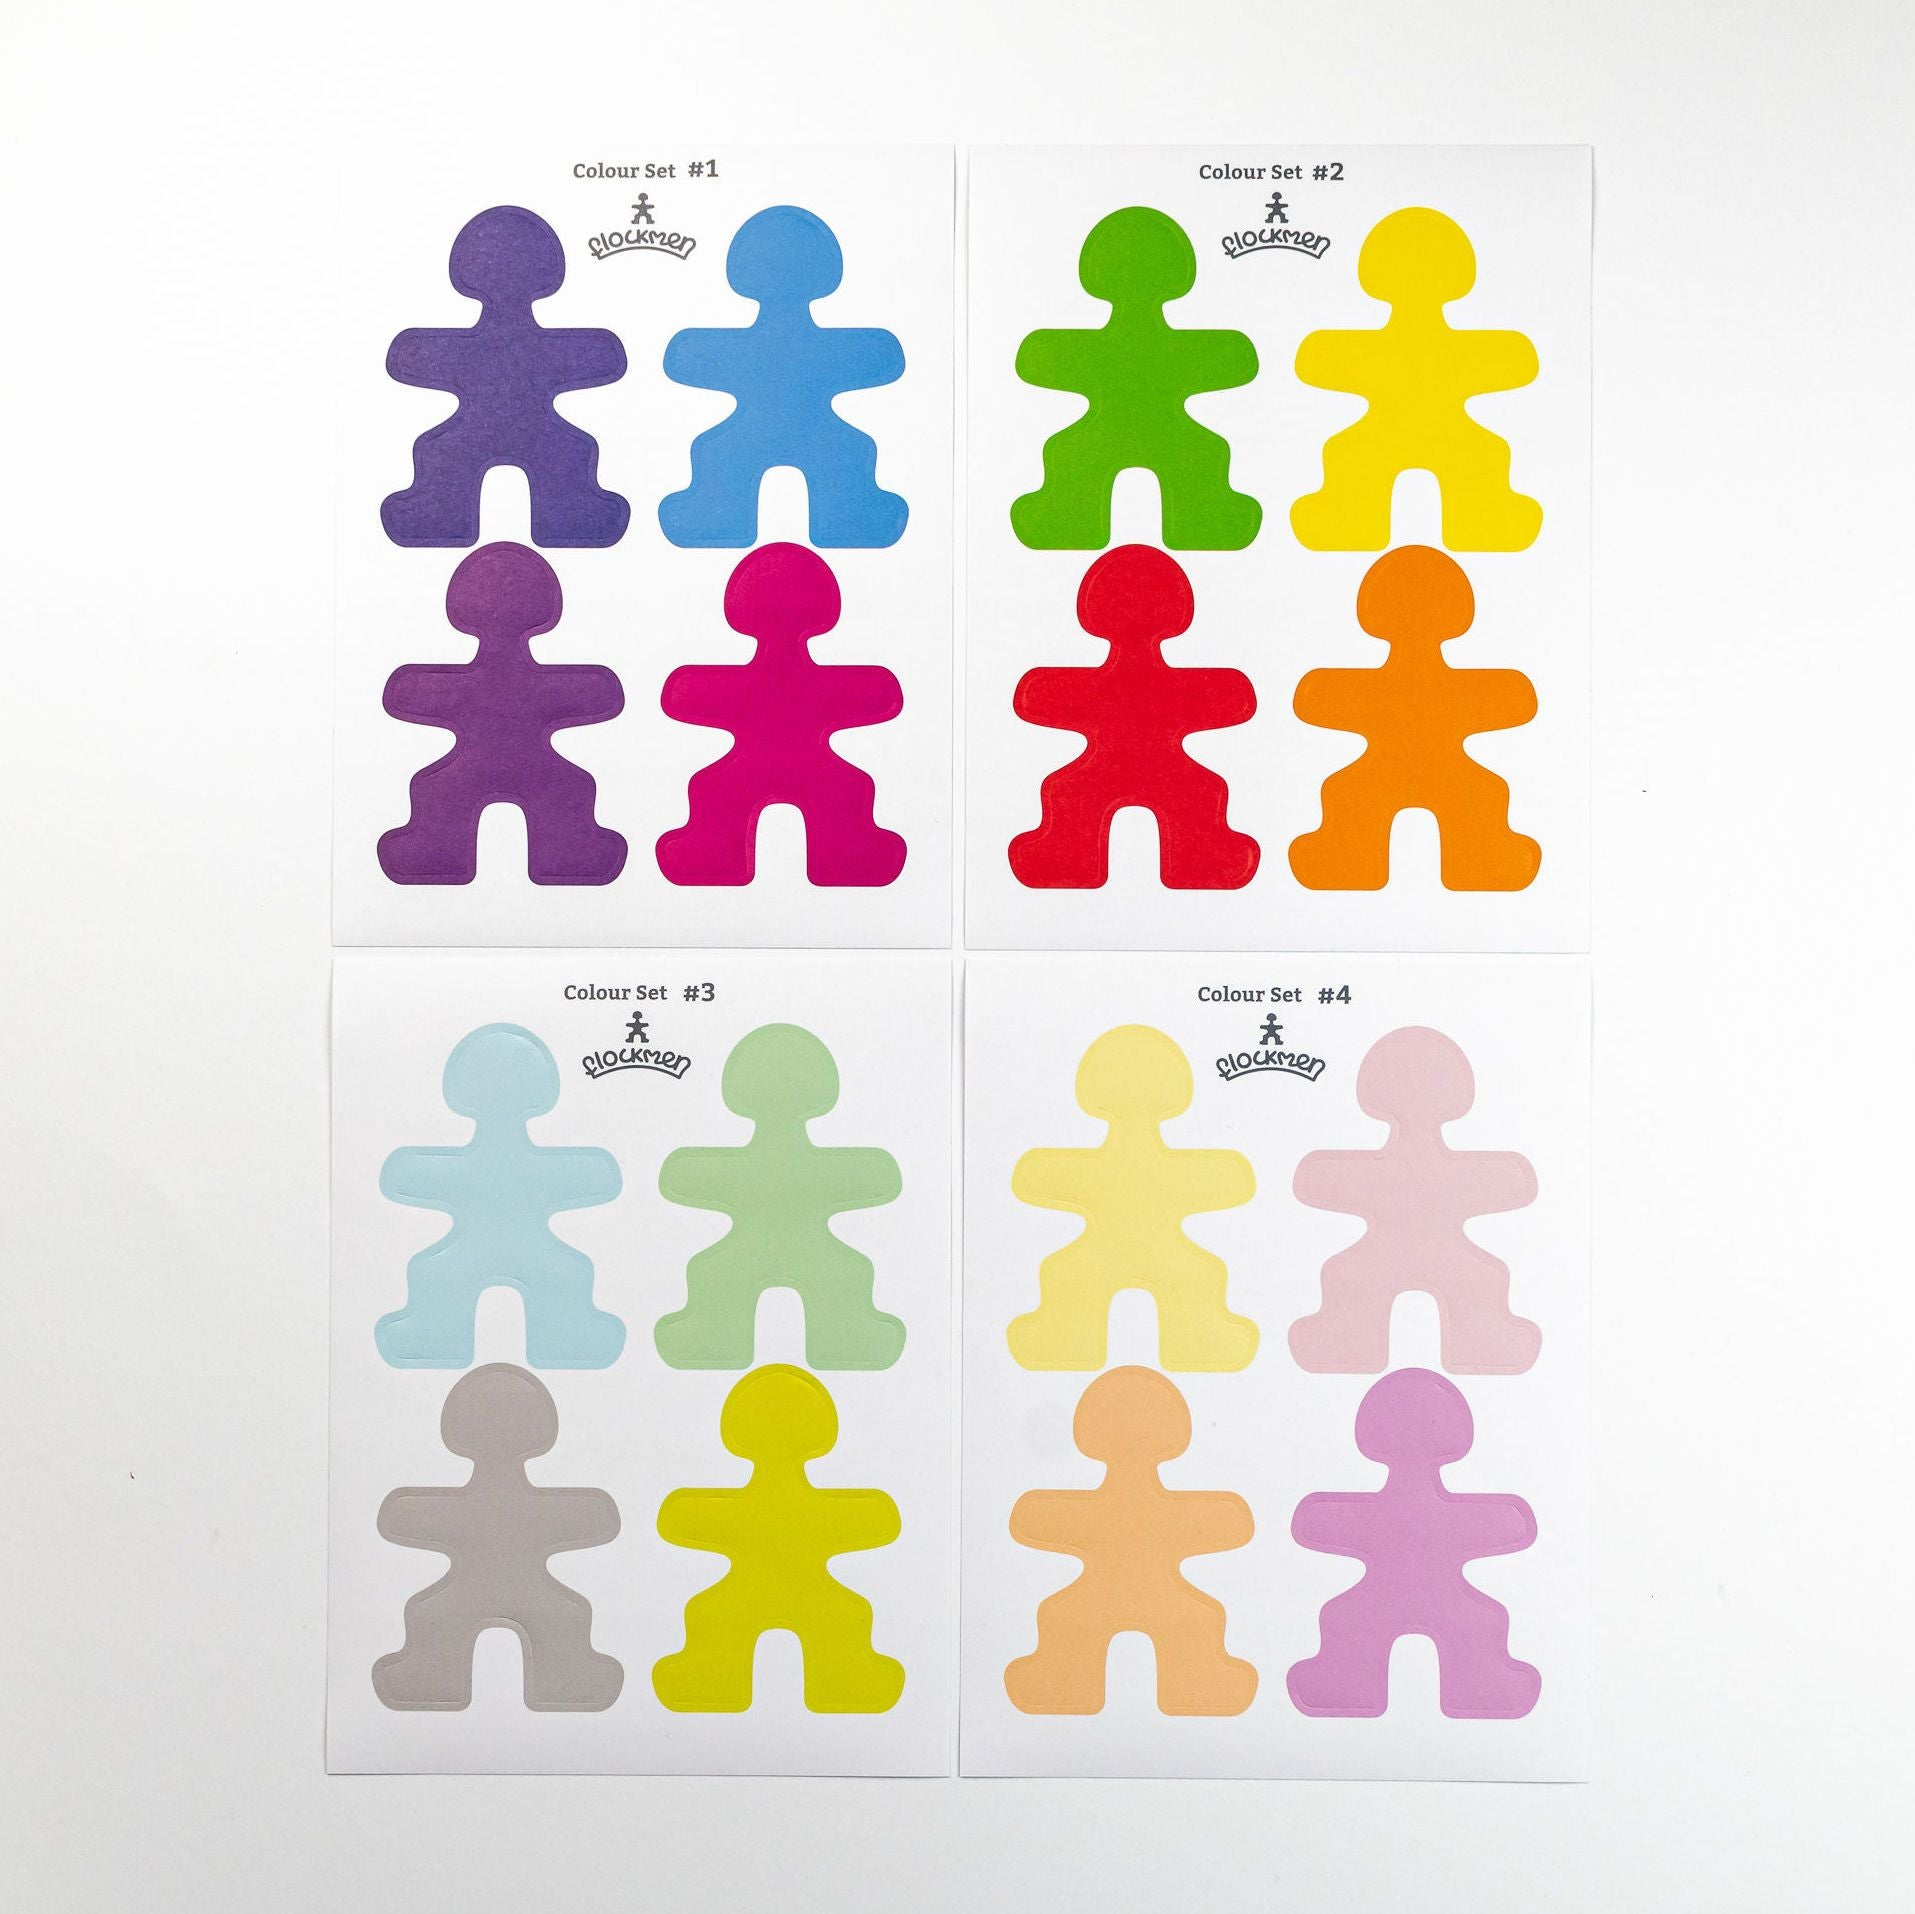 Flockmen Colour Sticker Set Malaysia - Bueno Blocks